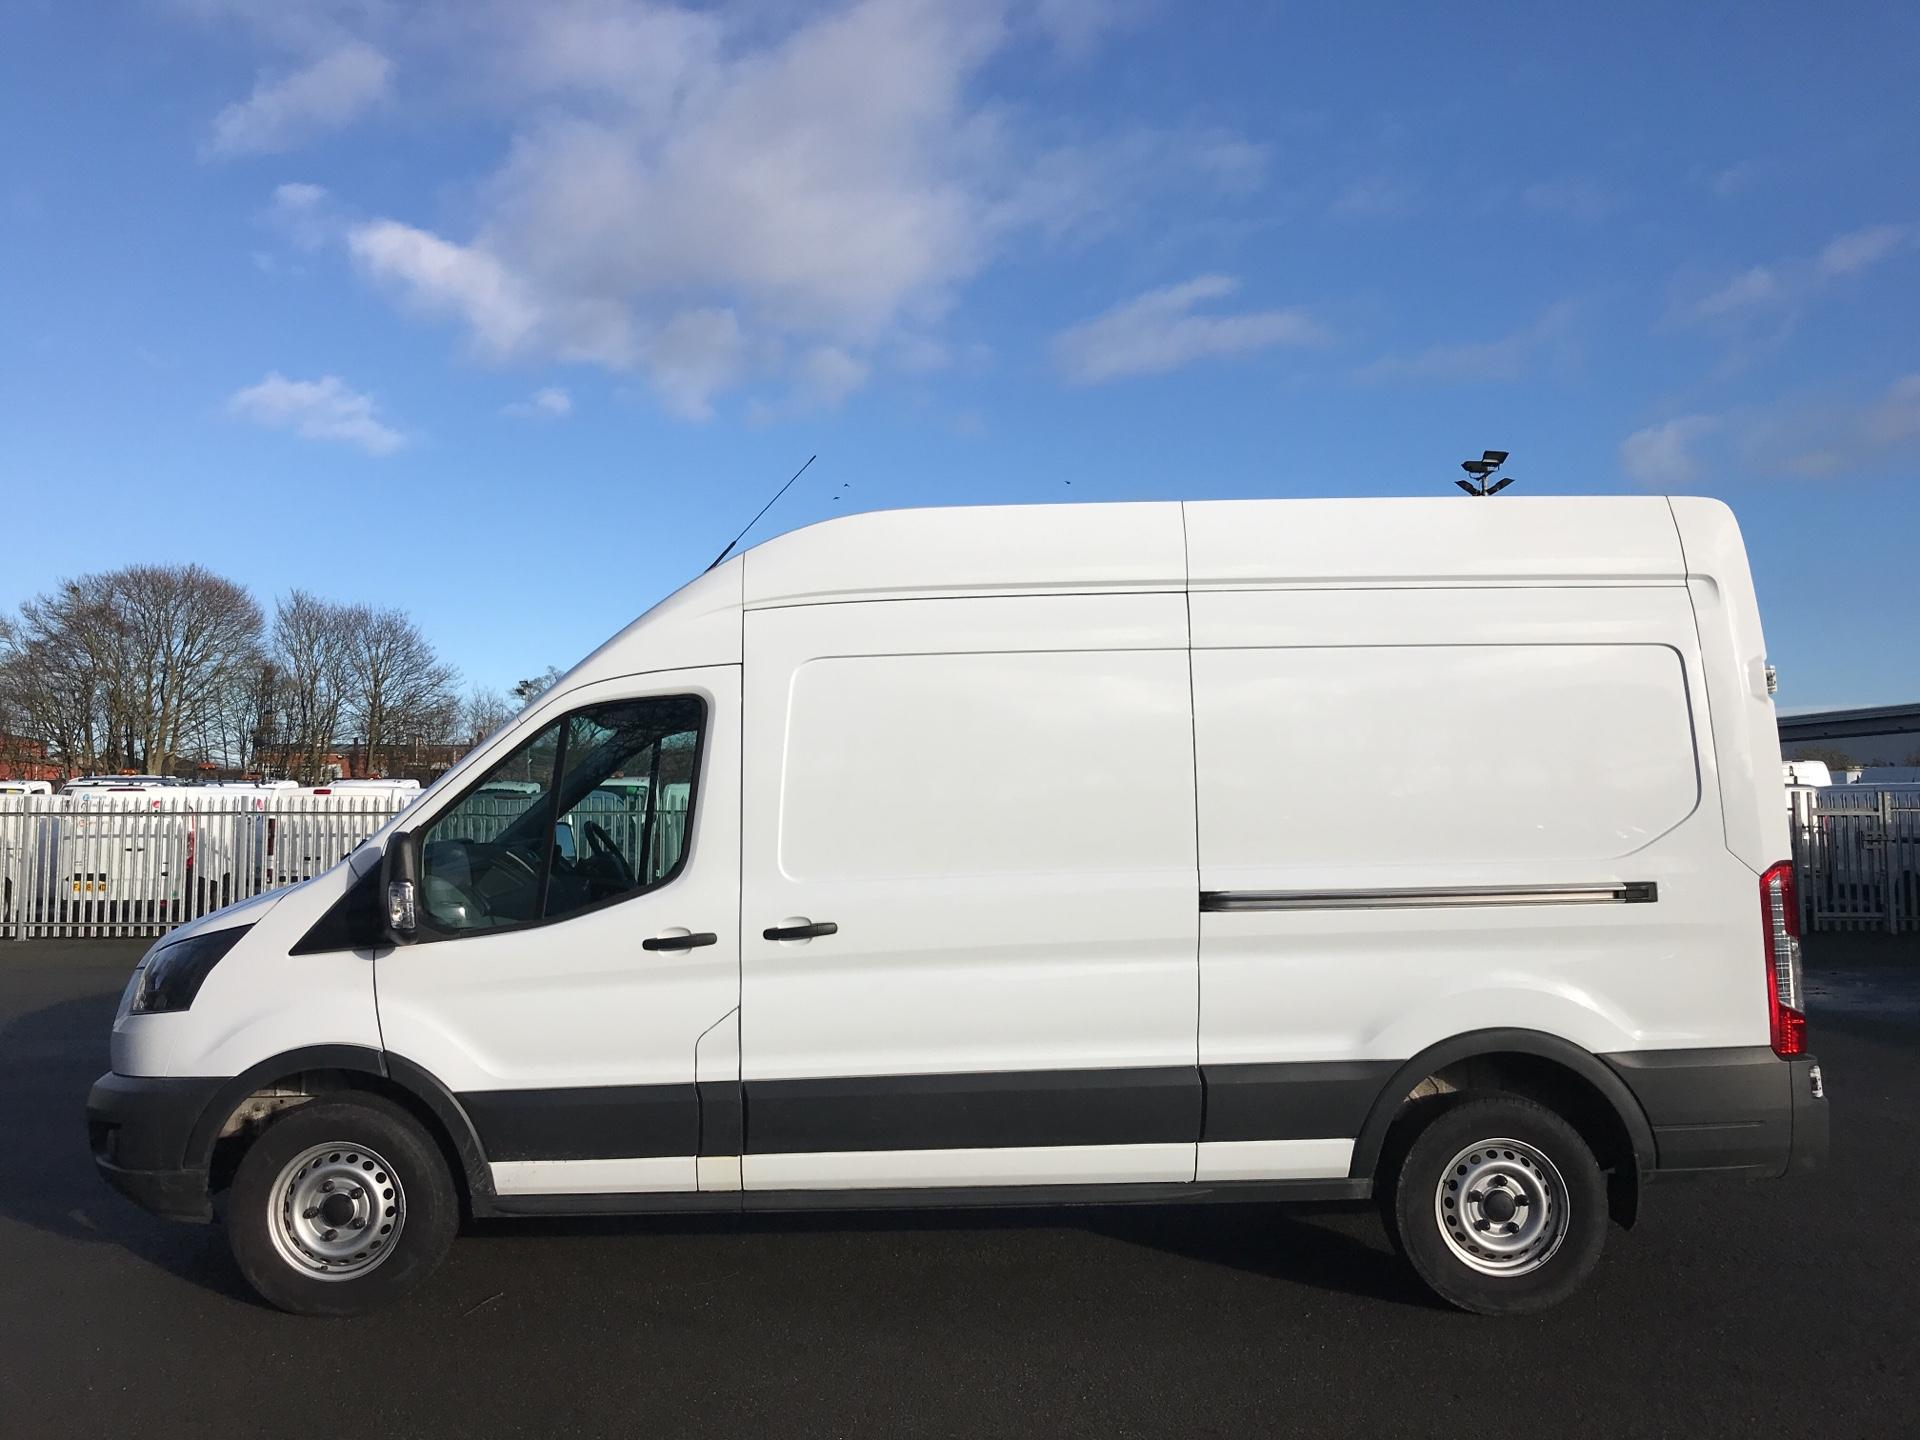 2018 Ford Transit L3 H3 VAN 130PS EURO 6  *VALUE RANGE VEHICLE - CONDITION REFLECTED IN PRICE*  (SM67MZE) Image 6